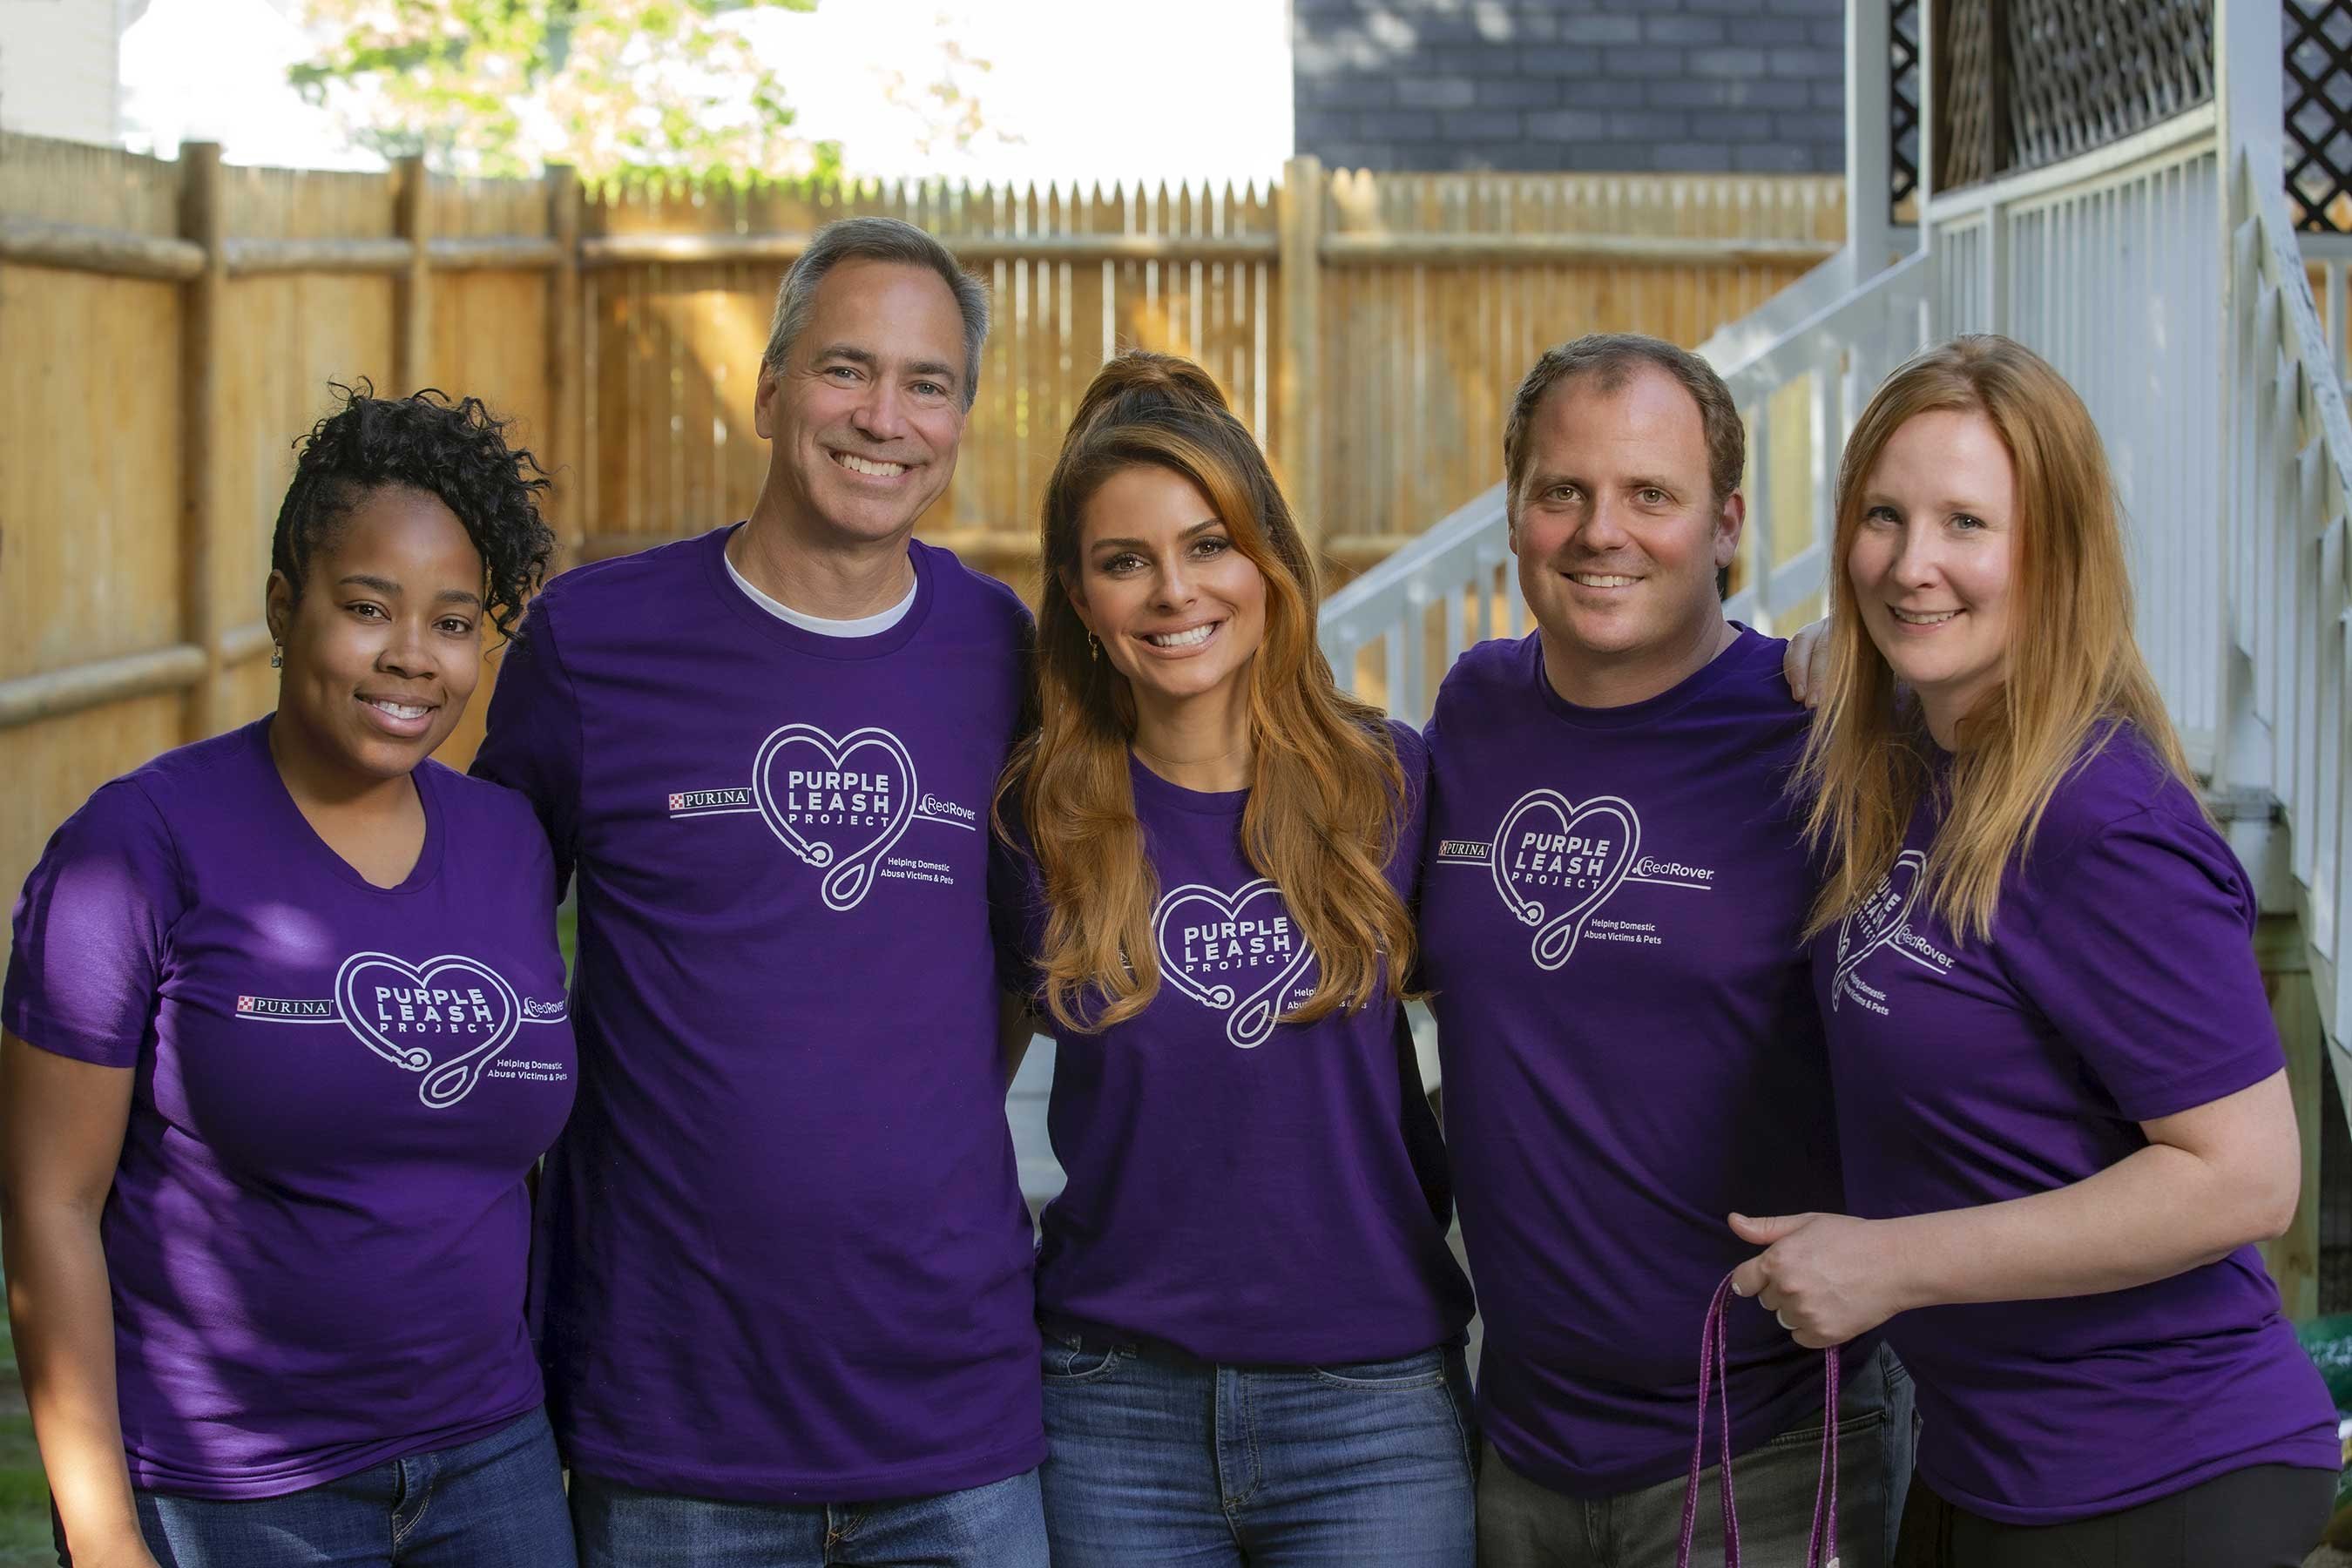 Purina has committed more than $500,000 to create RedRover + Purina Purple Leash Project Grants, which provide funding to make domestic violence shelters pet-friendly and help with renovations for pet owners escaping abuse.